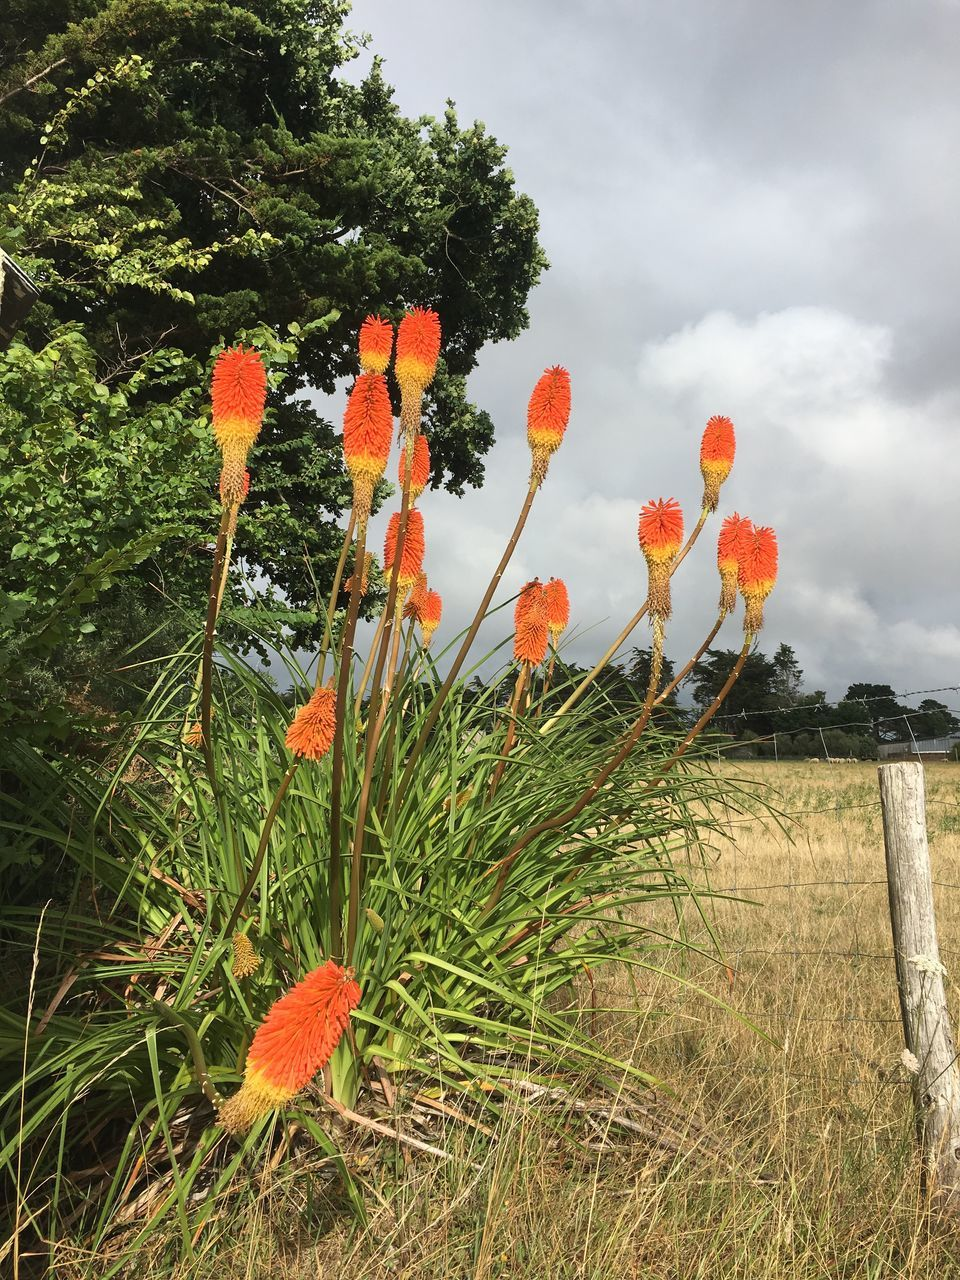 growth, orange color, nature, field, plant, no people, outdoors, beauty in nature, day, sky, poppy, grass, flower, tree, fragility, freshness, close-up